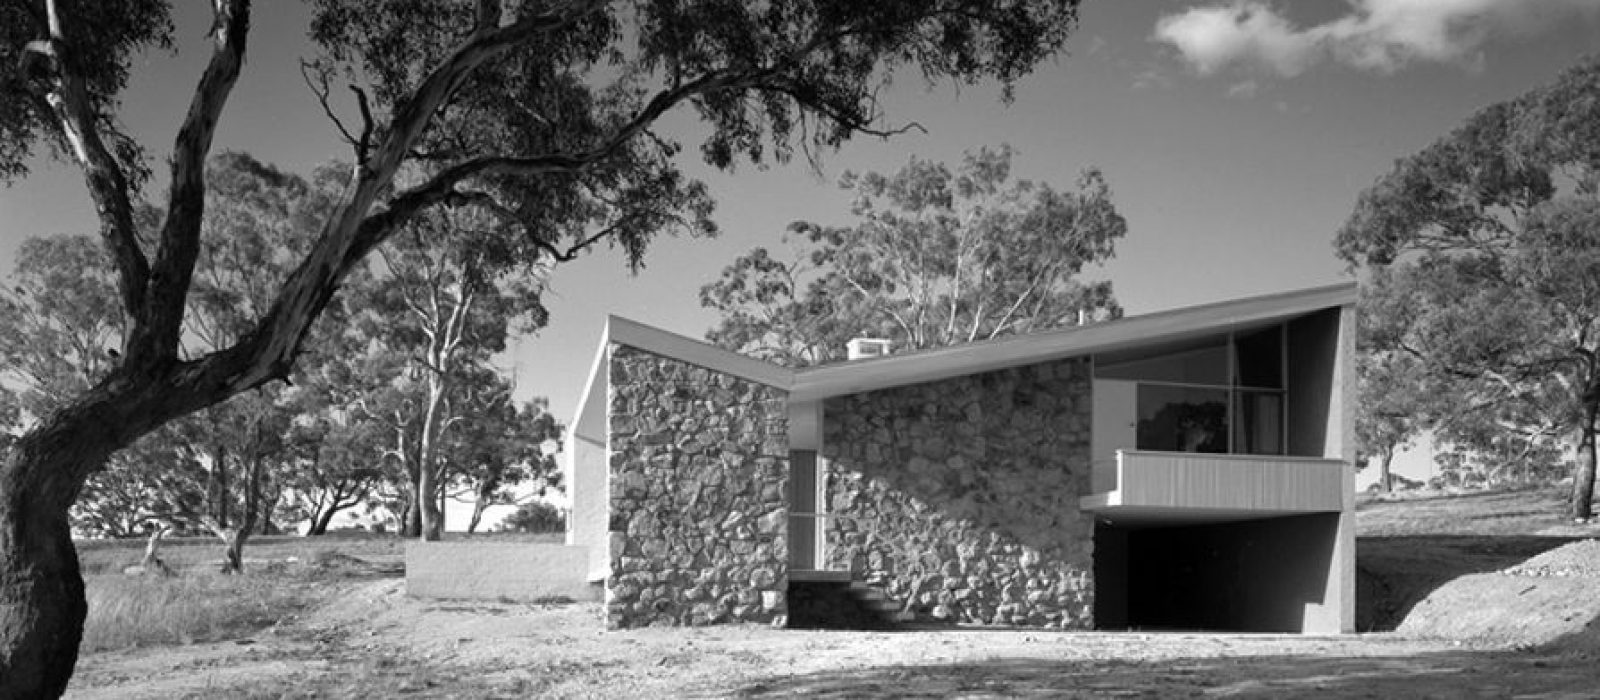 Bowden House by Harry Seidler (1954). Image: Max Dupain, copyright Penelope Seidler